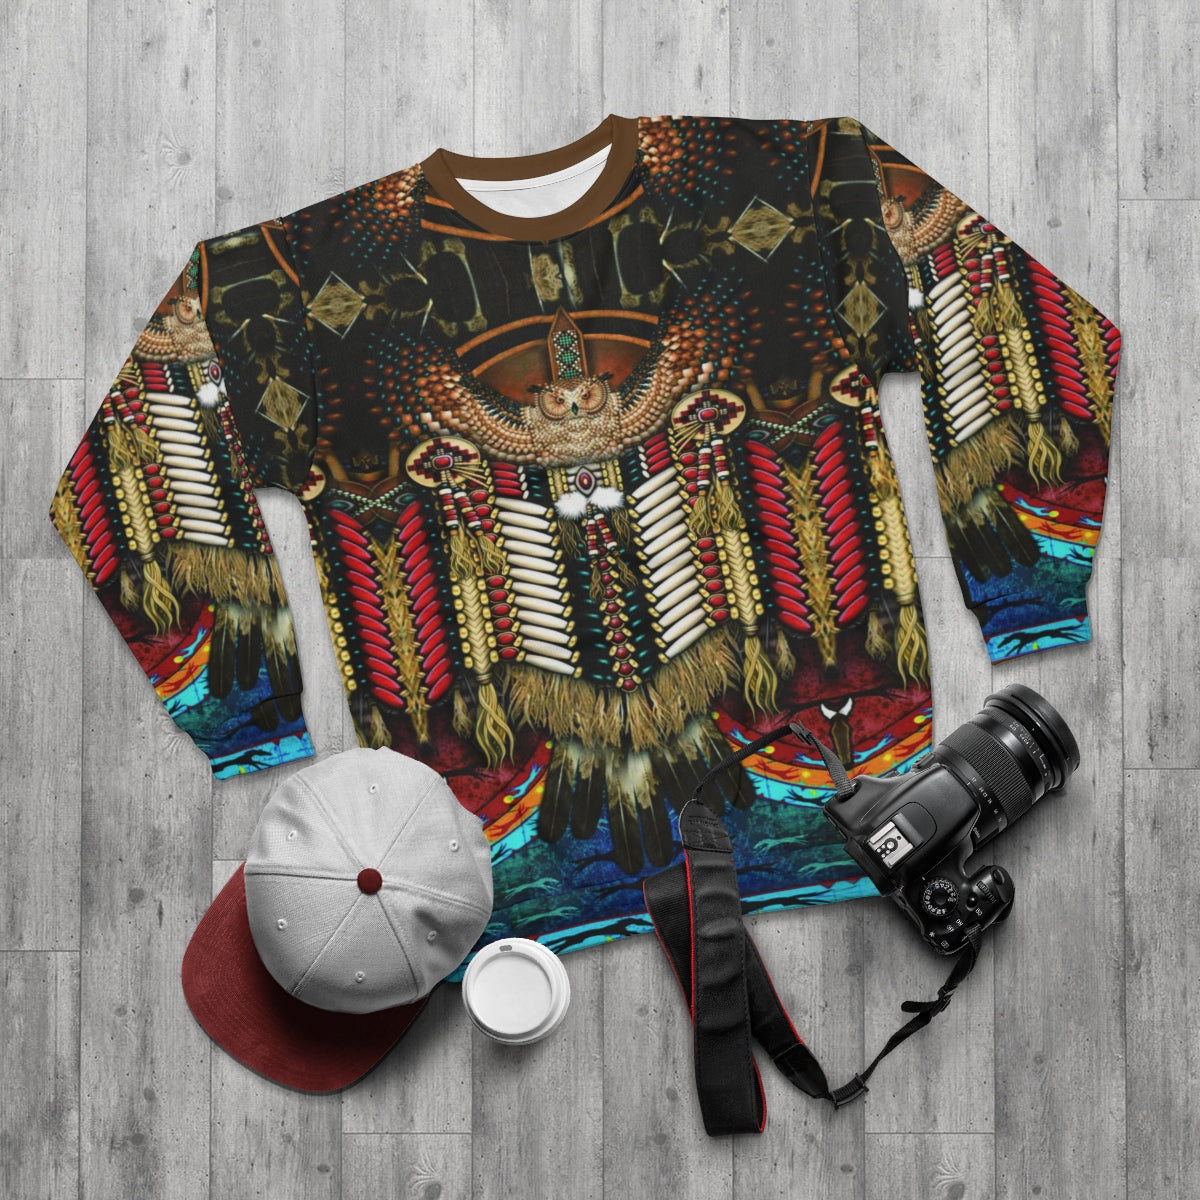 Wise Owl All Over Print Sweatshirt